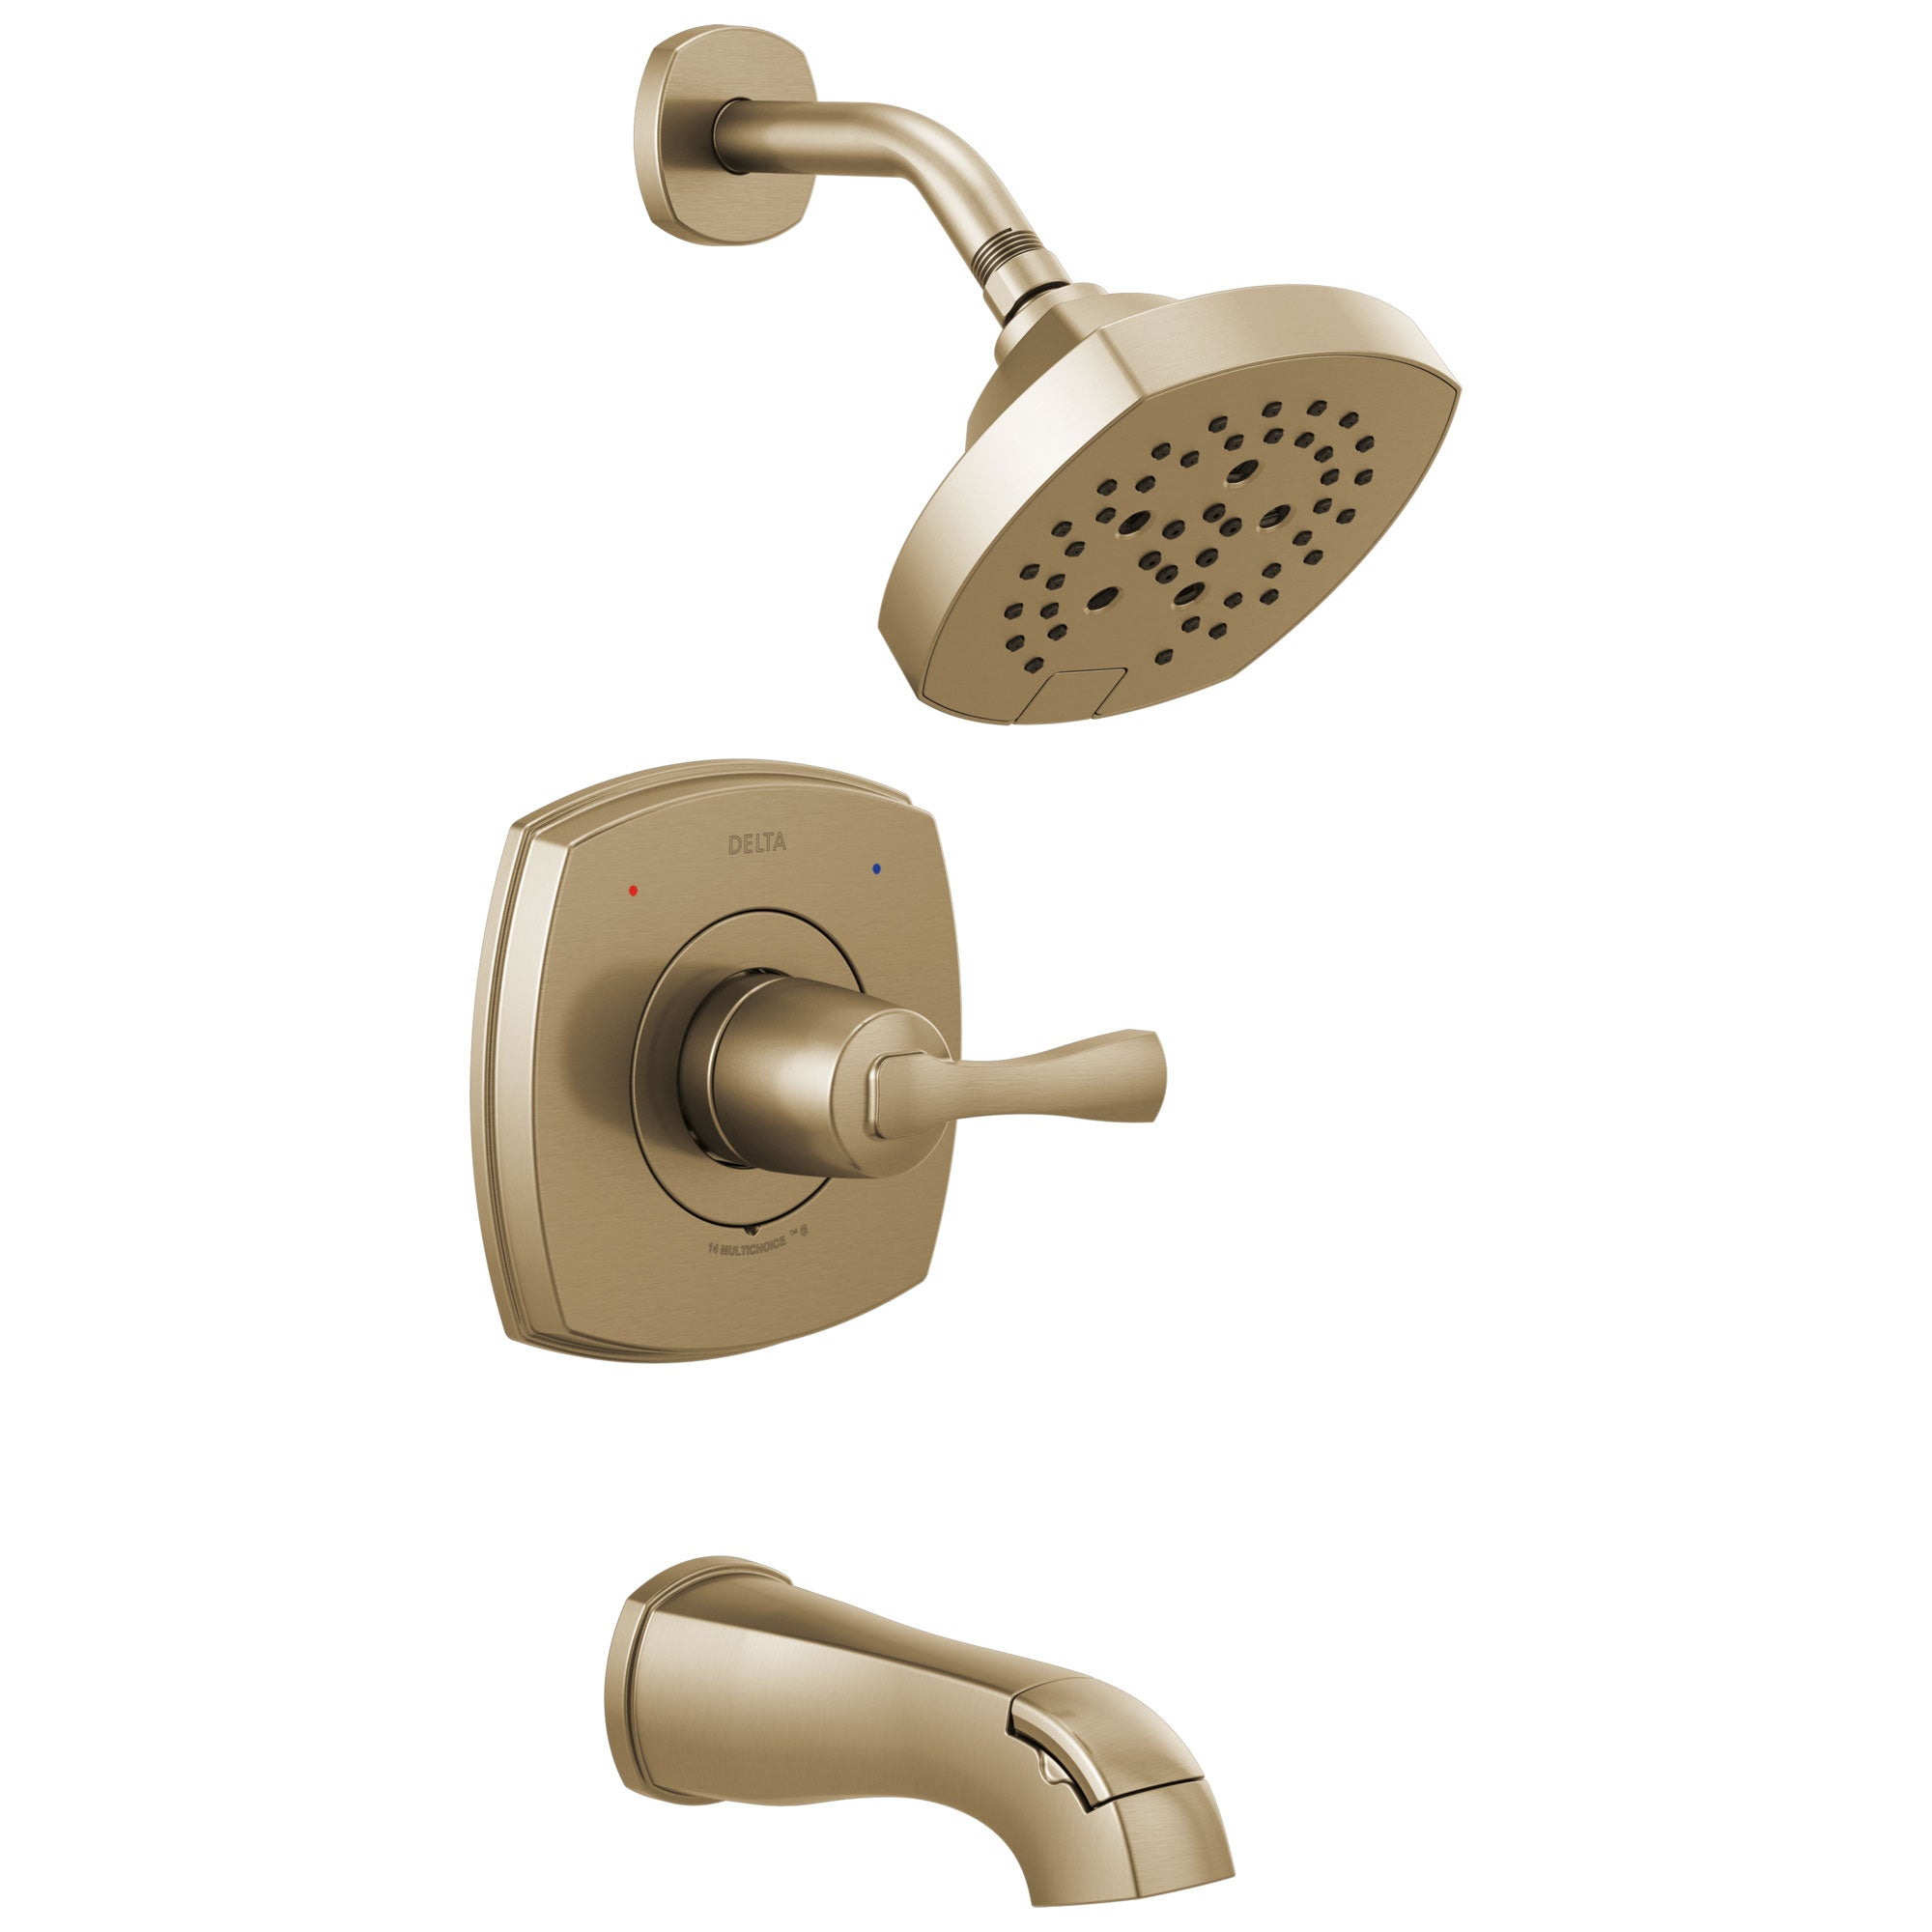 Delta Stryke Champagne Bronze Finish 14 Series Tub and Shower Combo Faucet Includes Single Lever Handle, Cartridge, and Valve without Stops D3431V